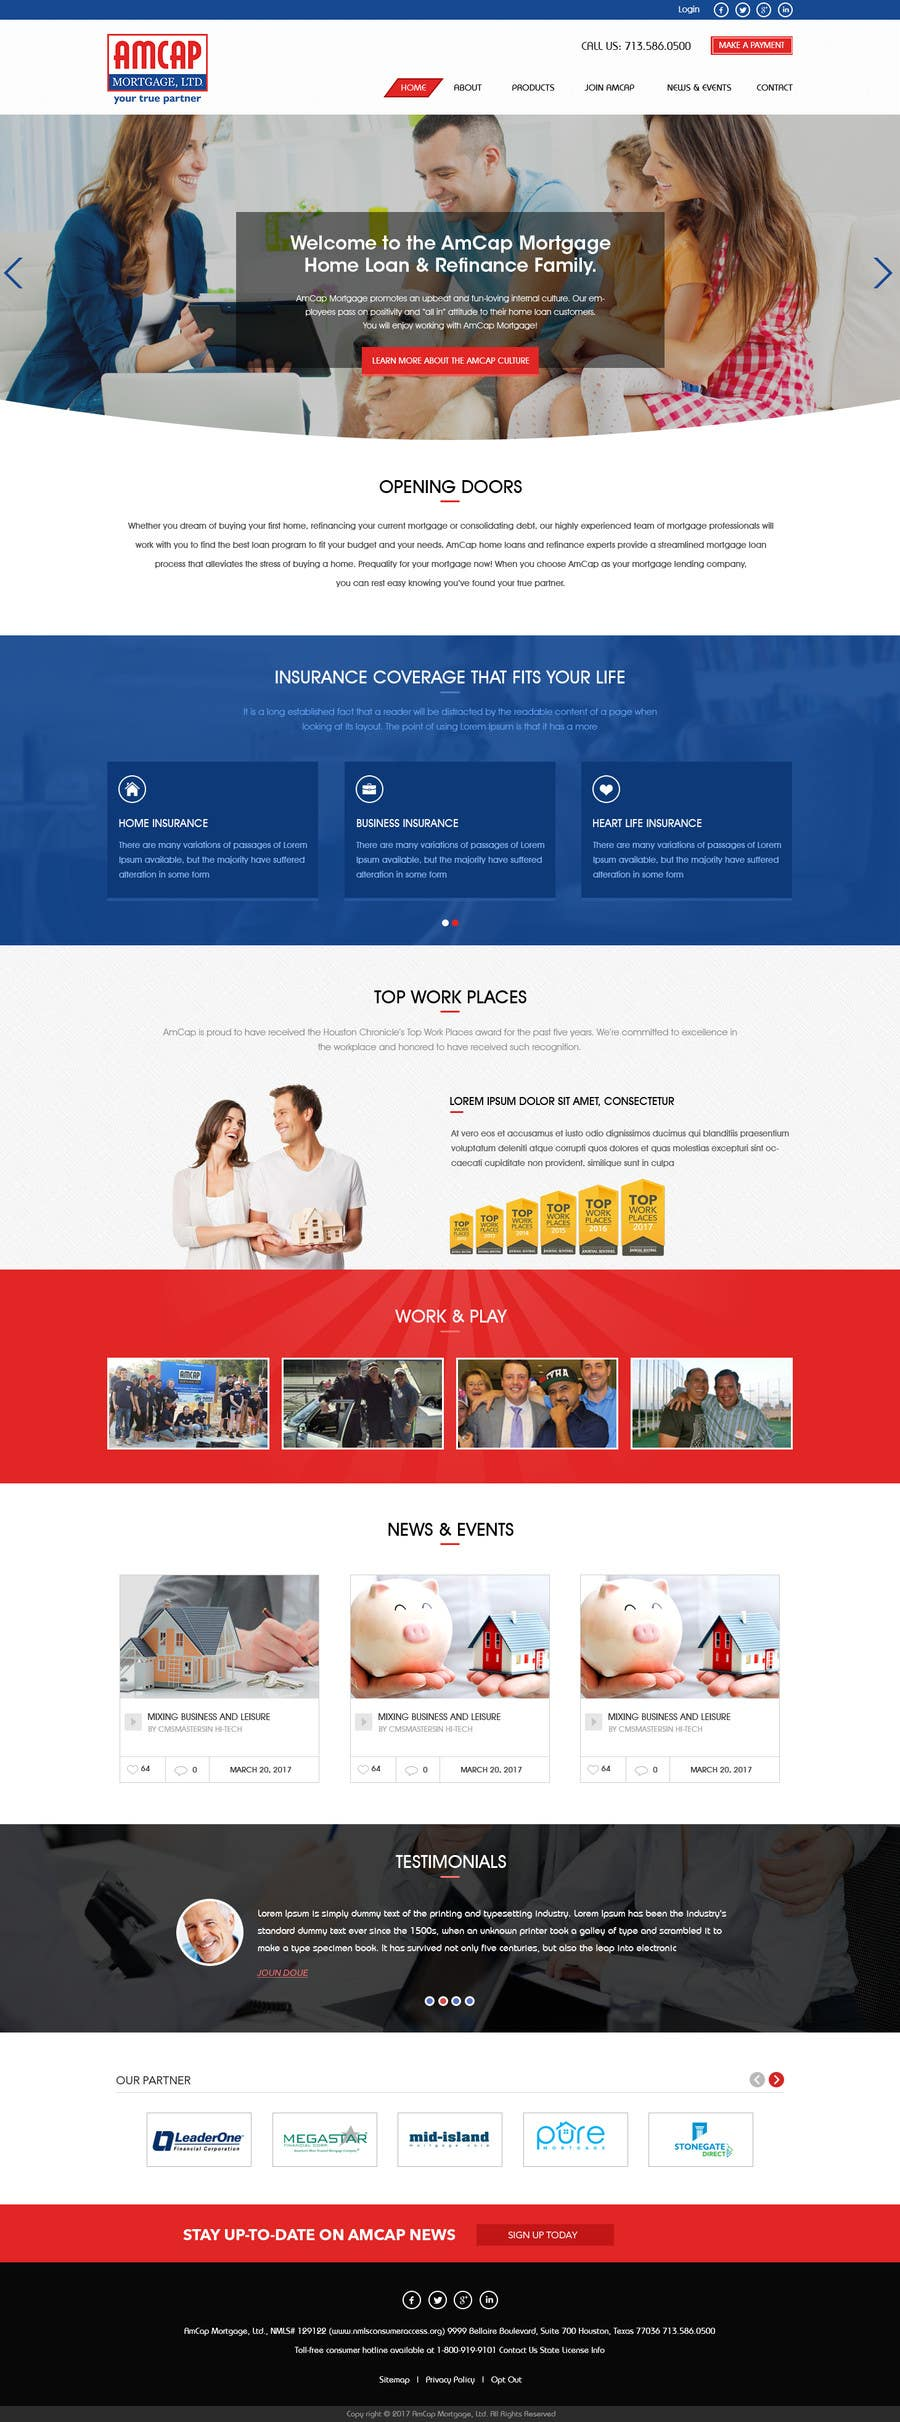 Proposition n°2 du concours Design a Website Mockup - HOMEPAGE ONLY - for a Mortgage Company